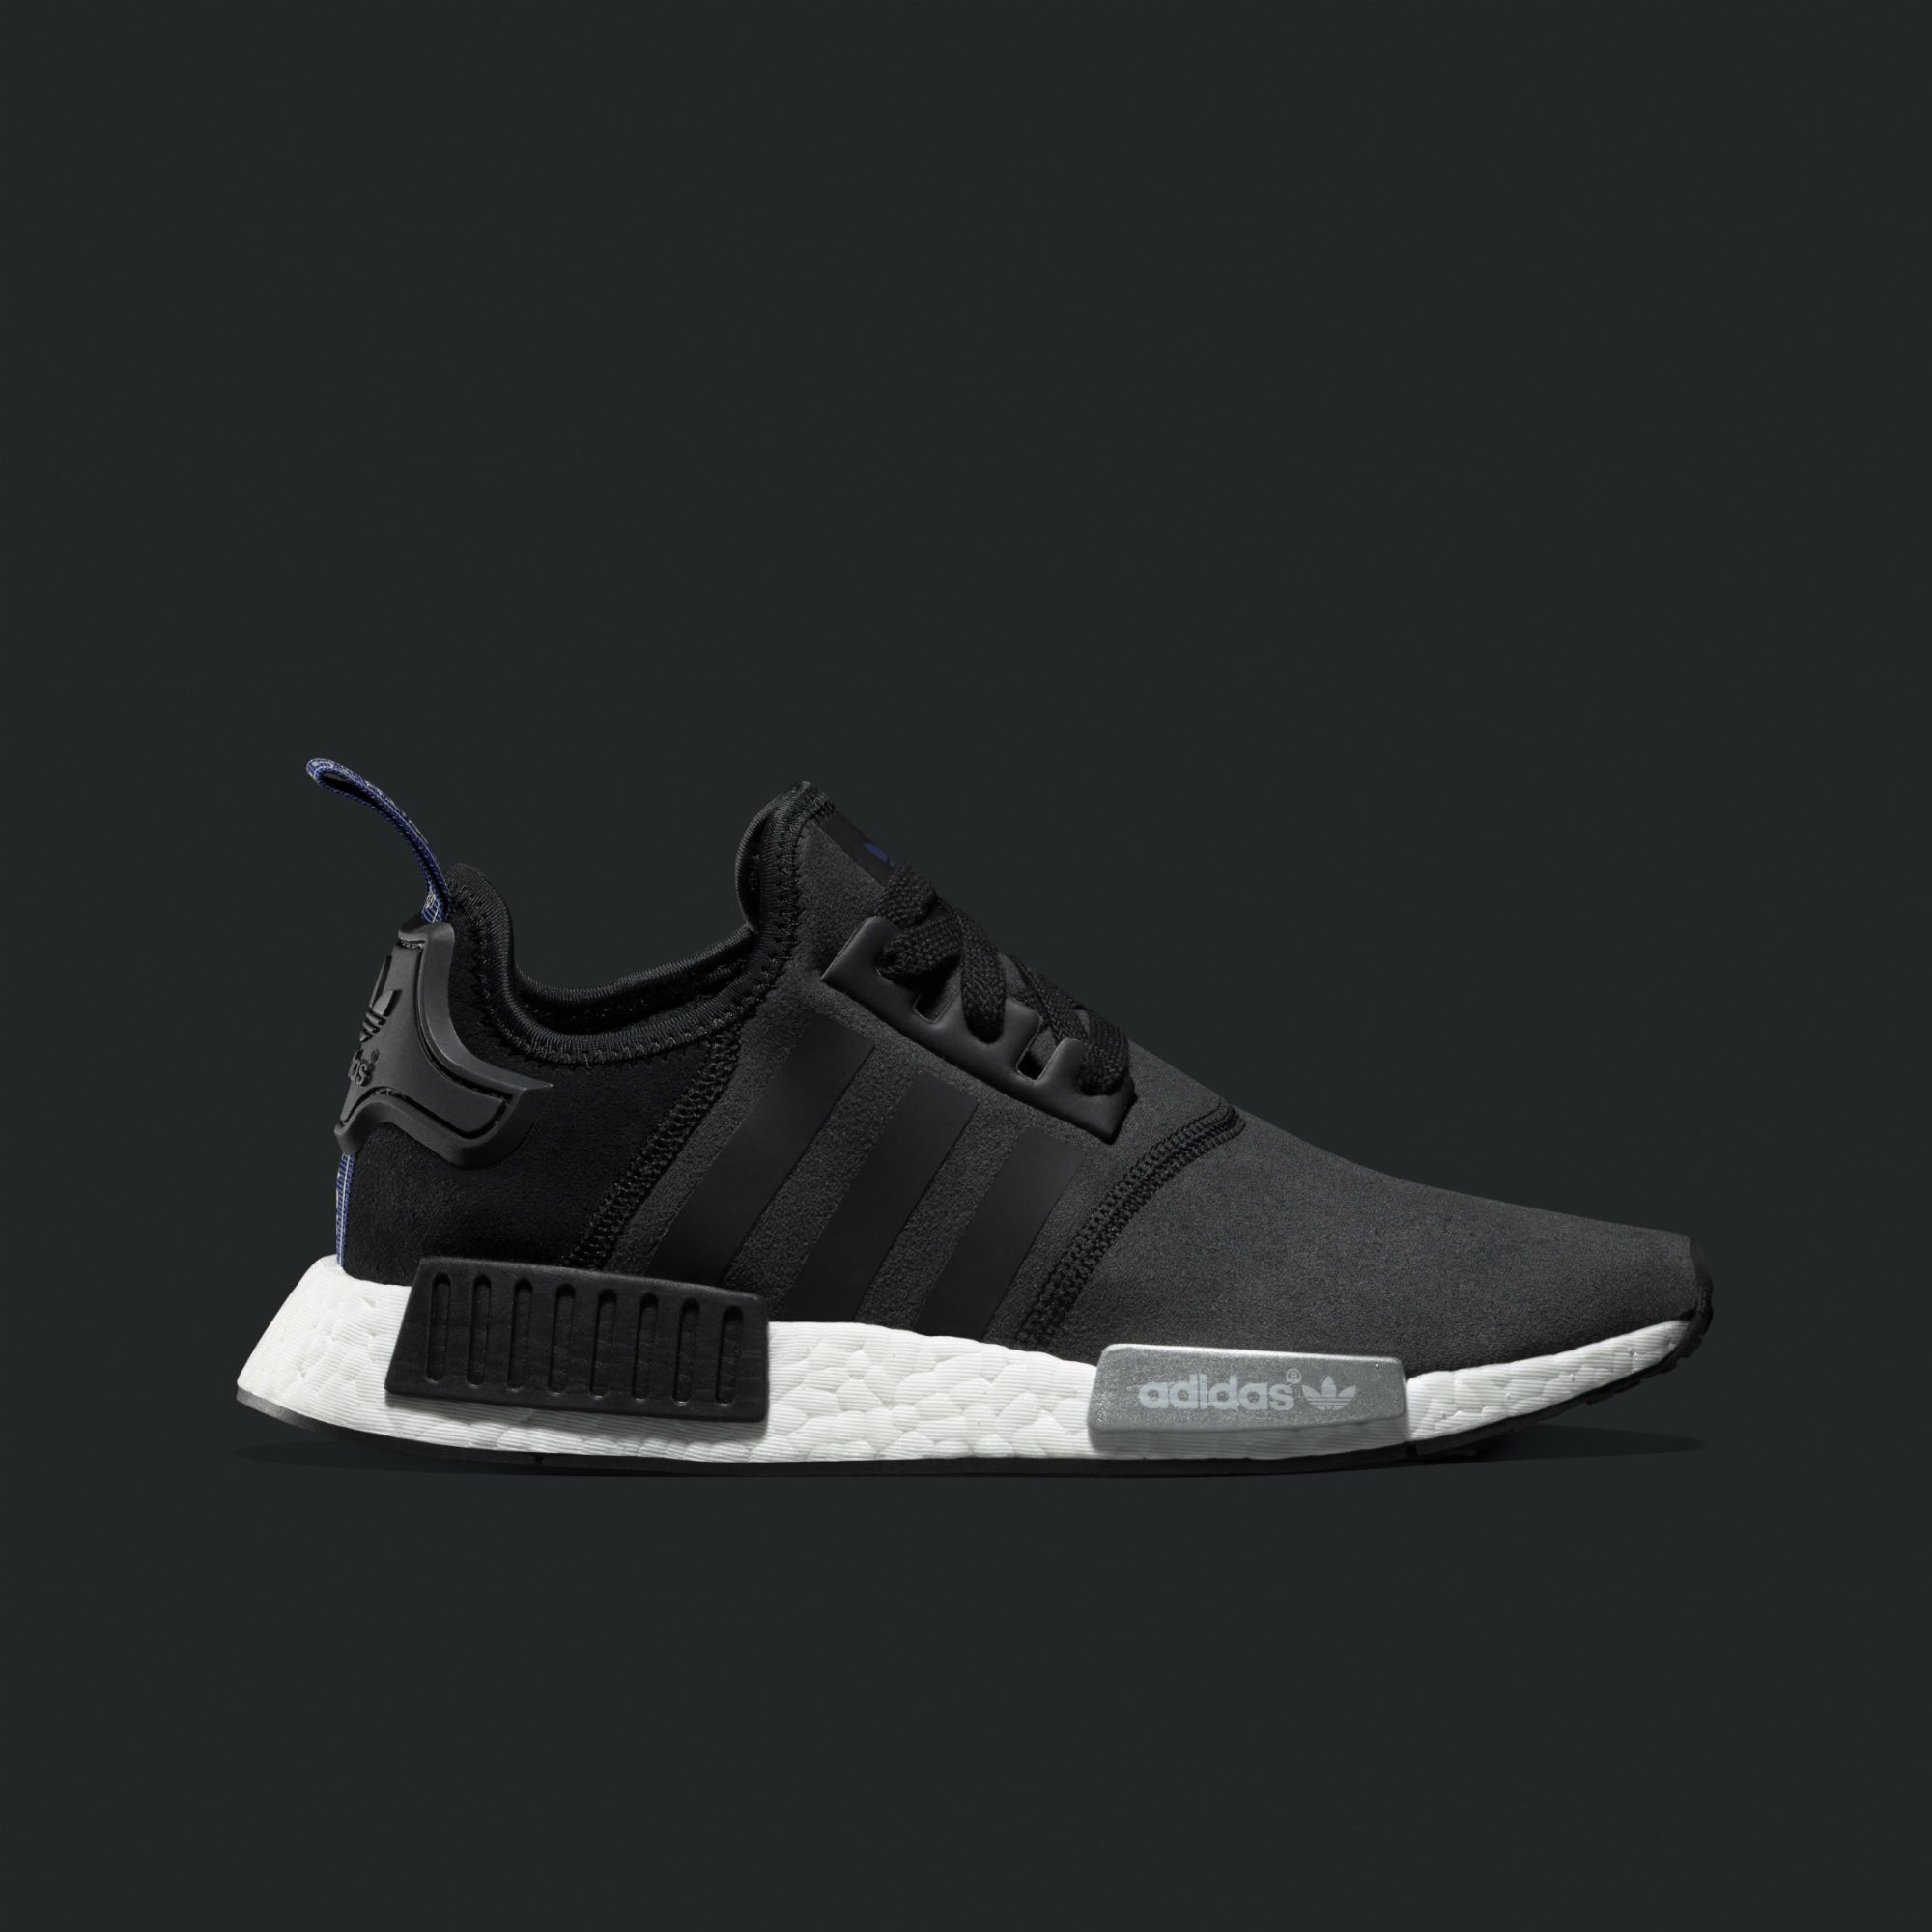 537ae9f8e223c ... switzerland female fans of the adidas nmd runner line get some great  news today with the